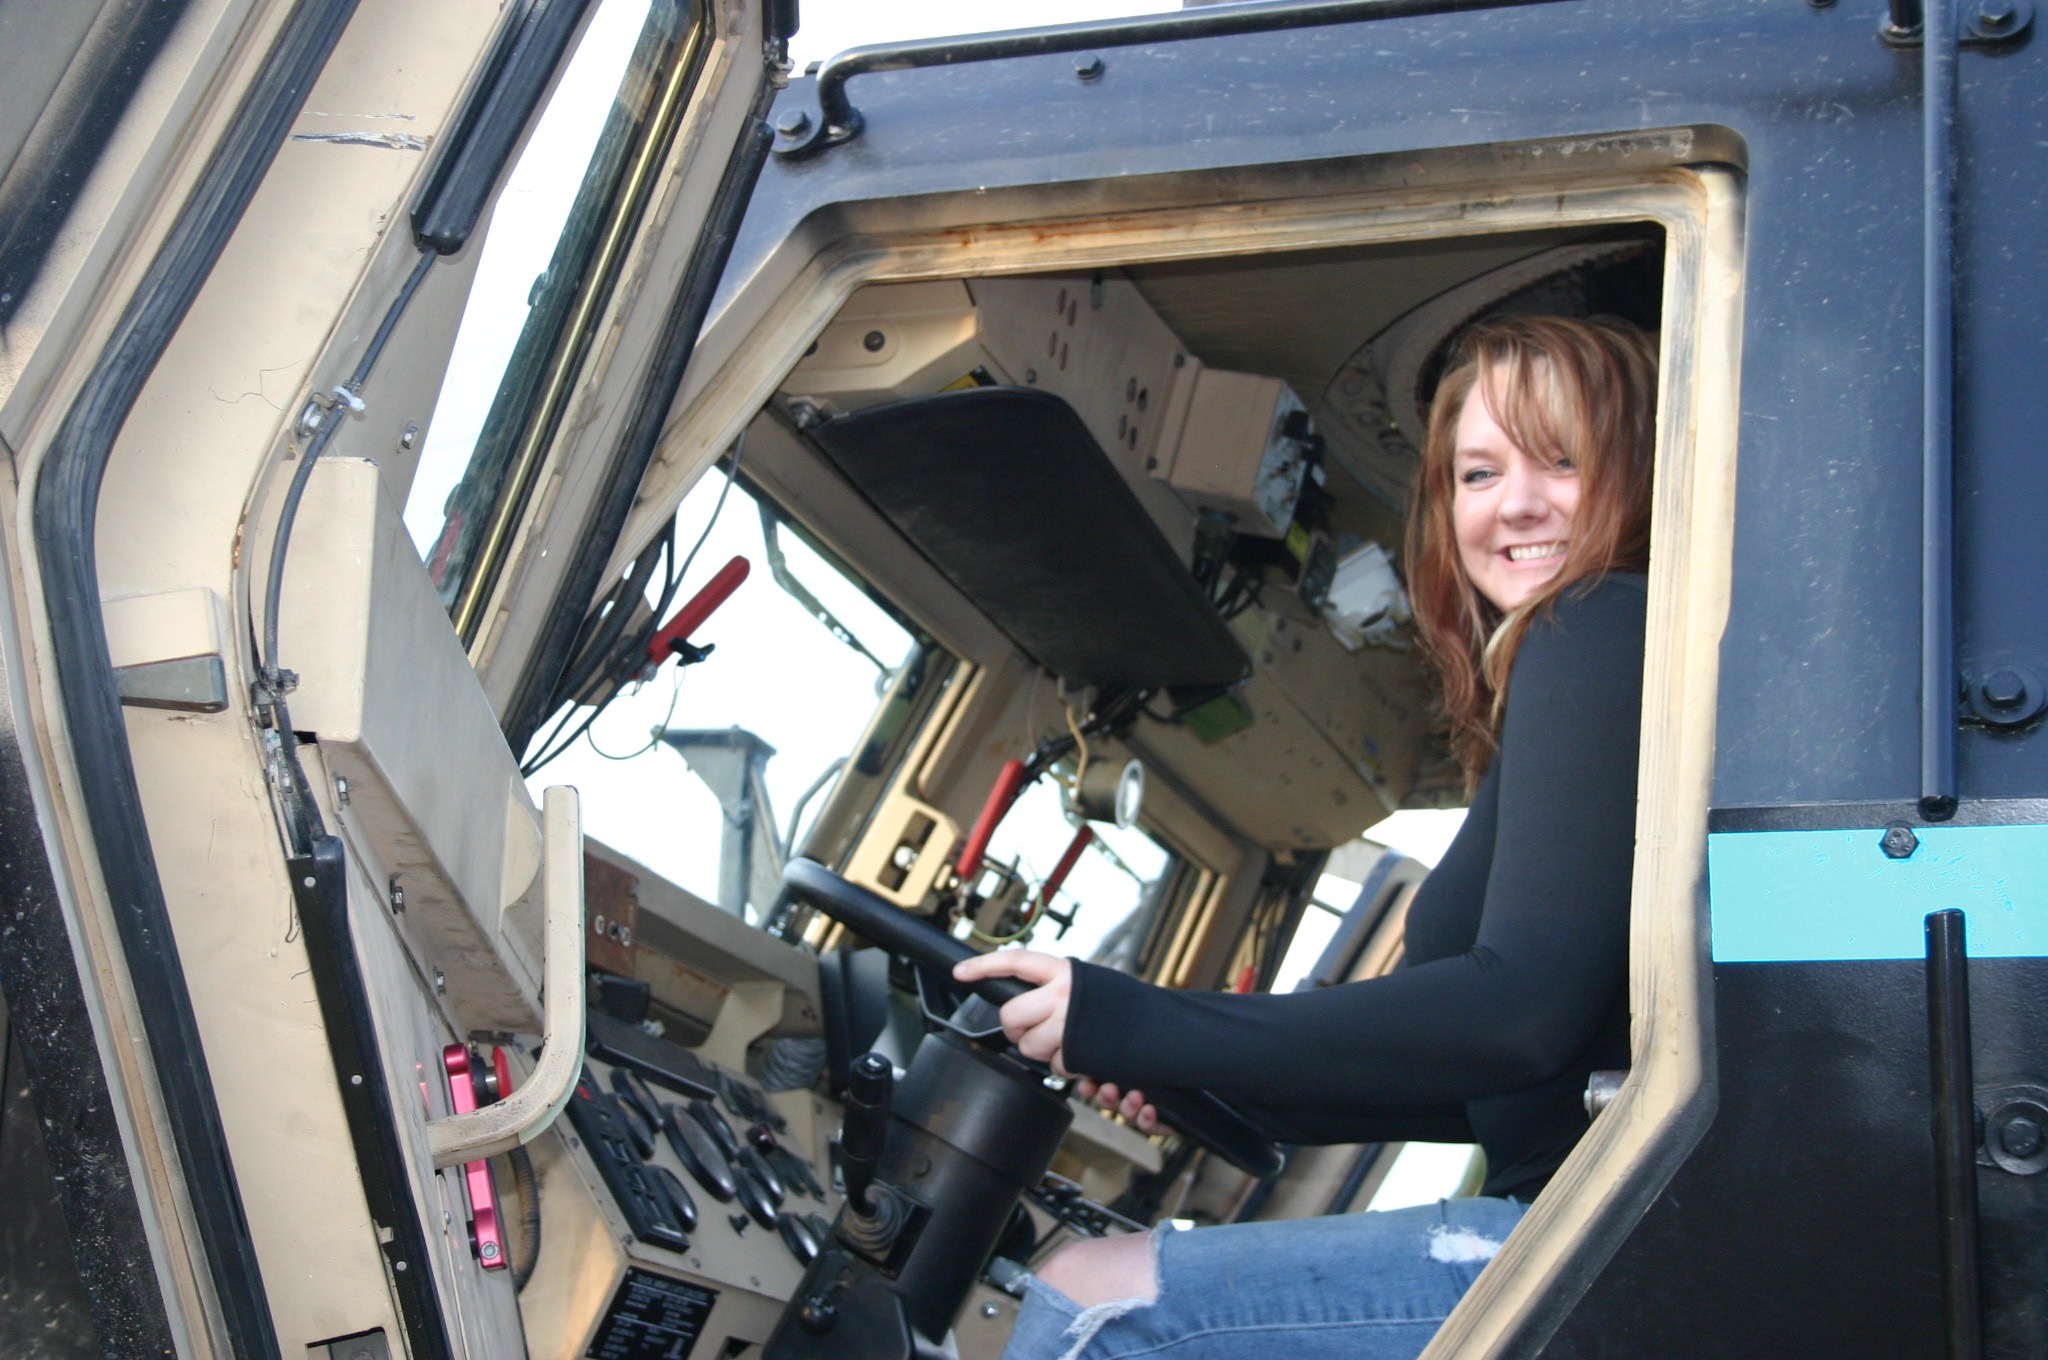 In the driver's seat of the Rescue Vehicle.